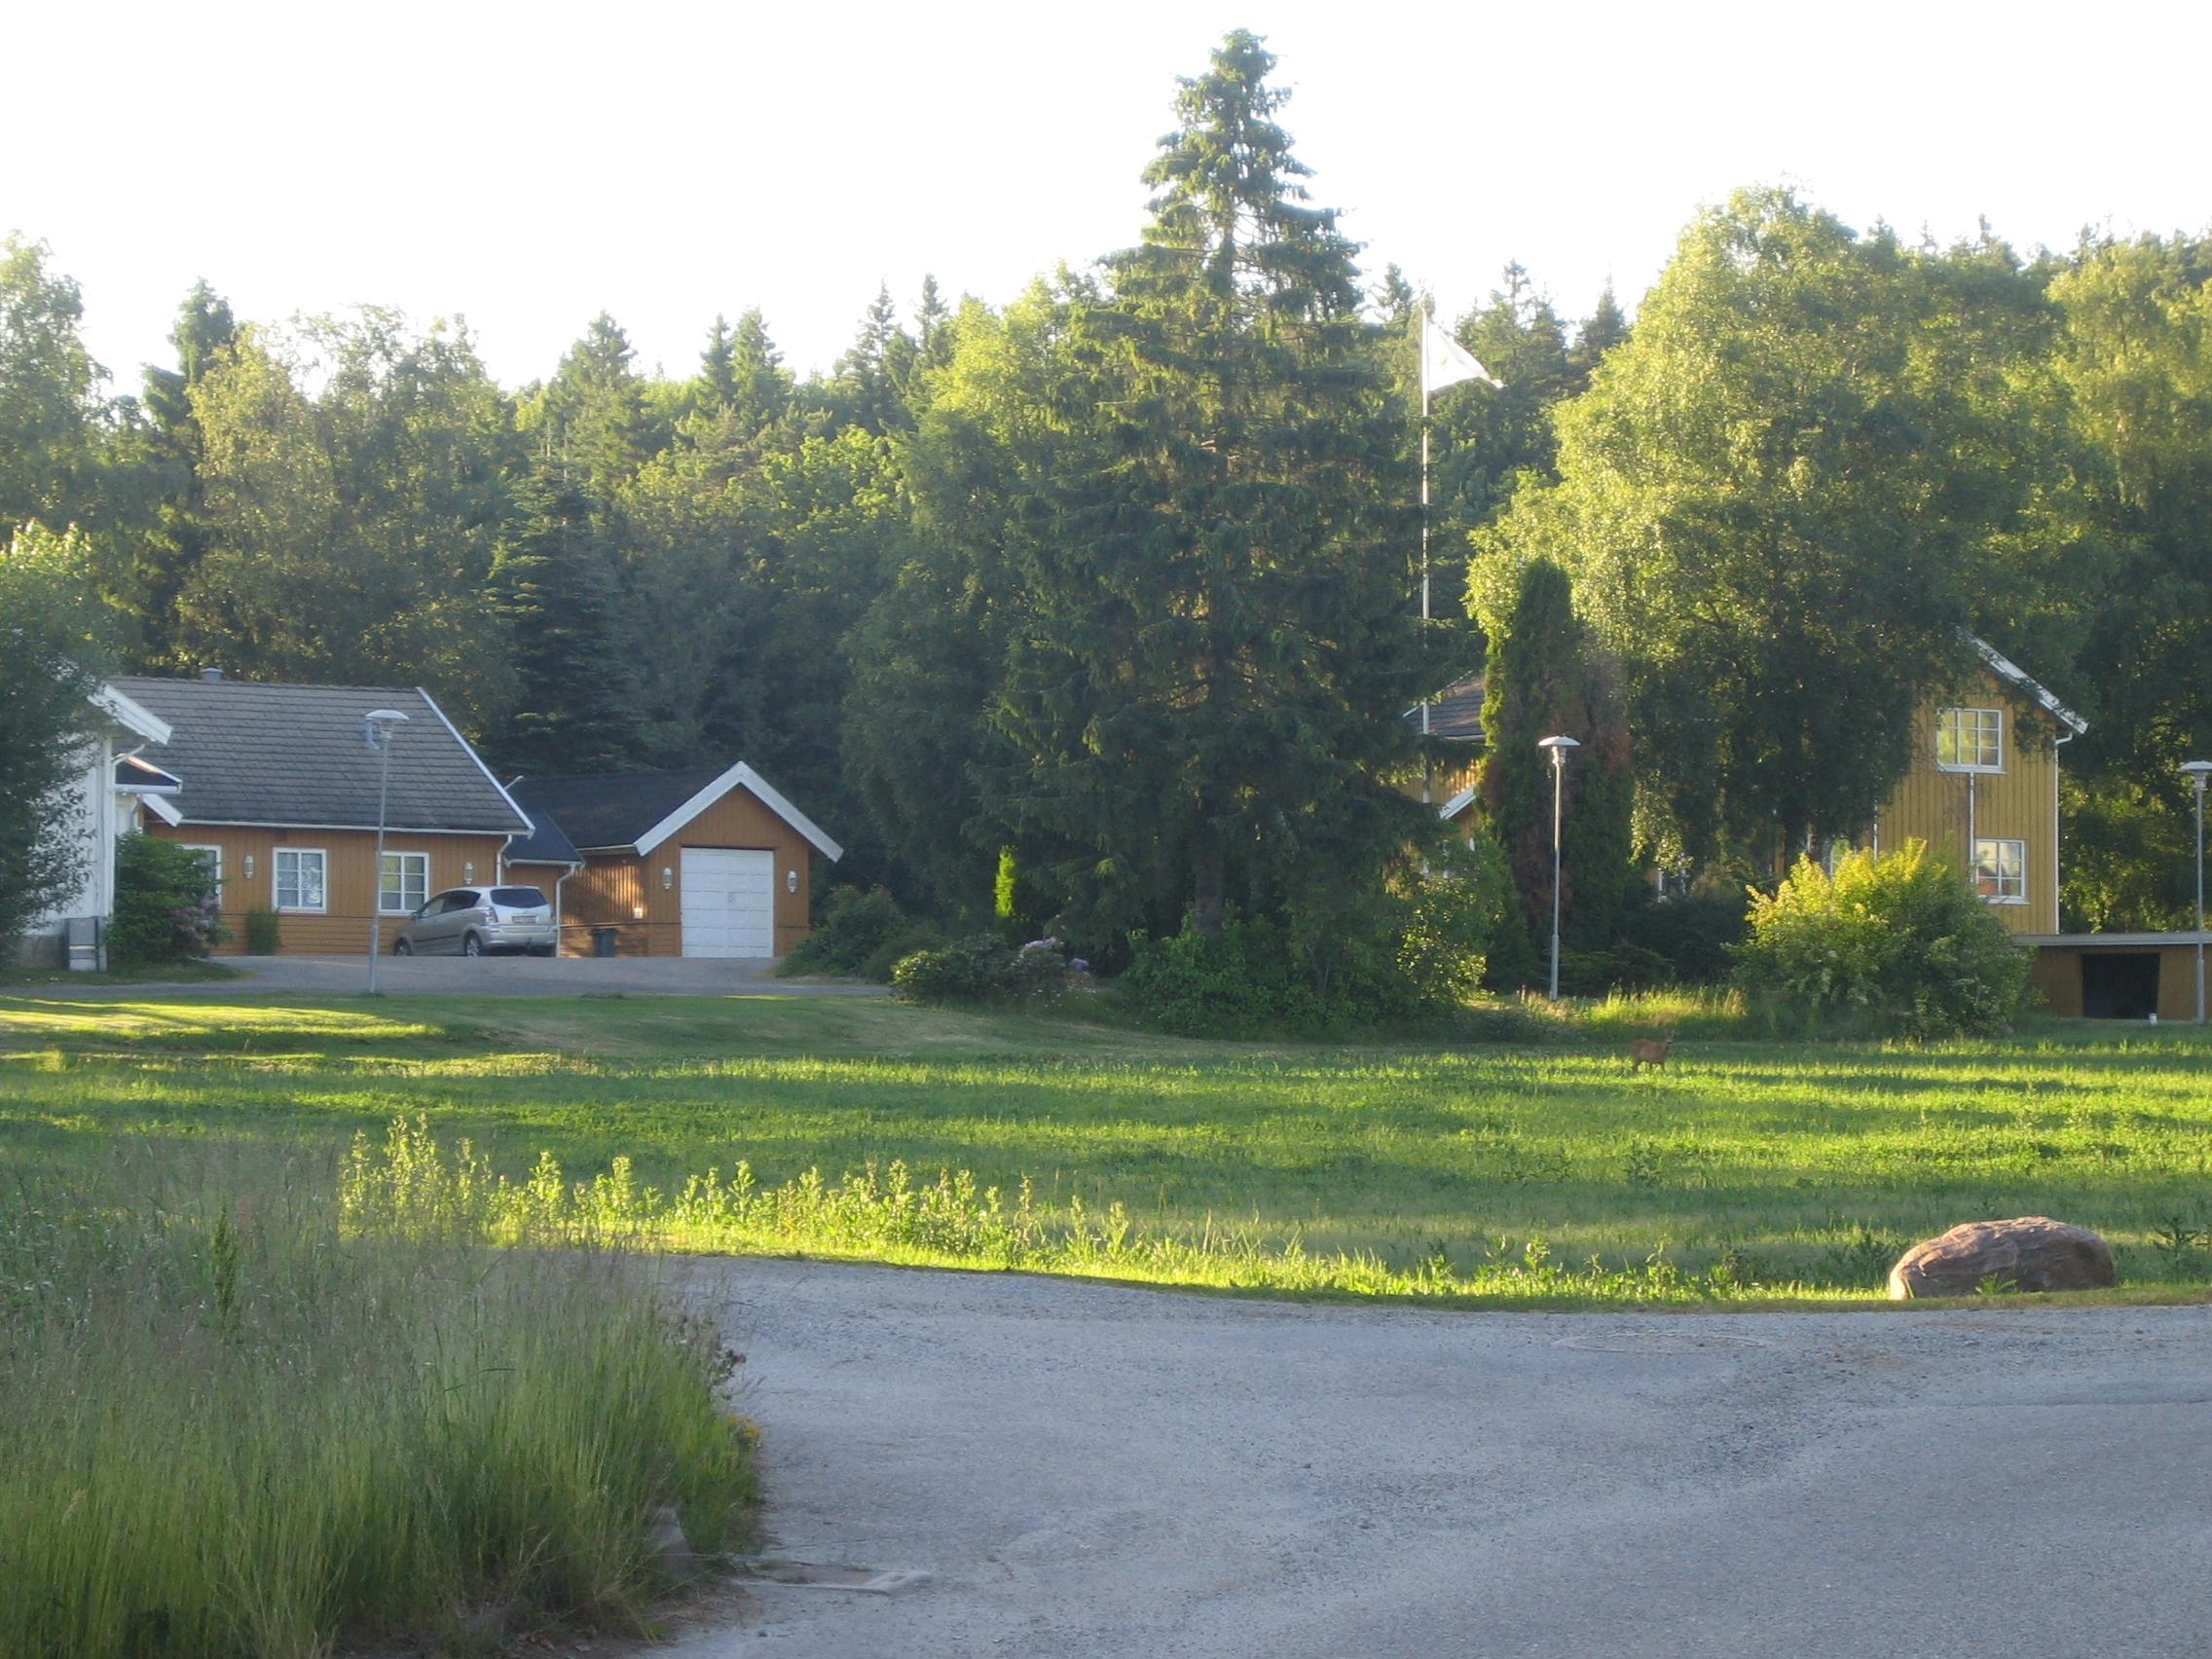 HI Halden Hostel